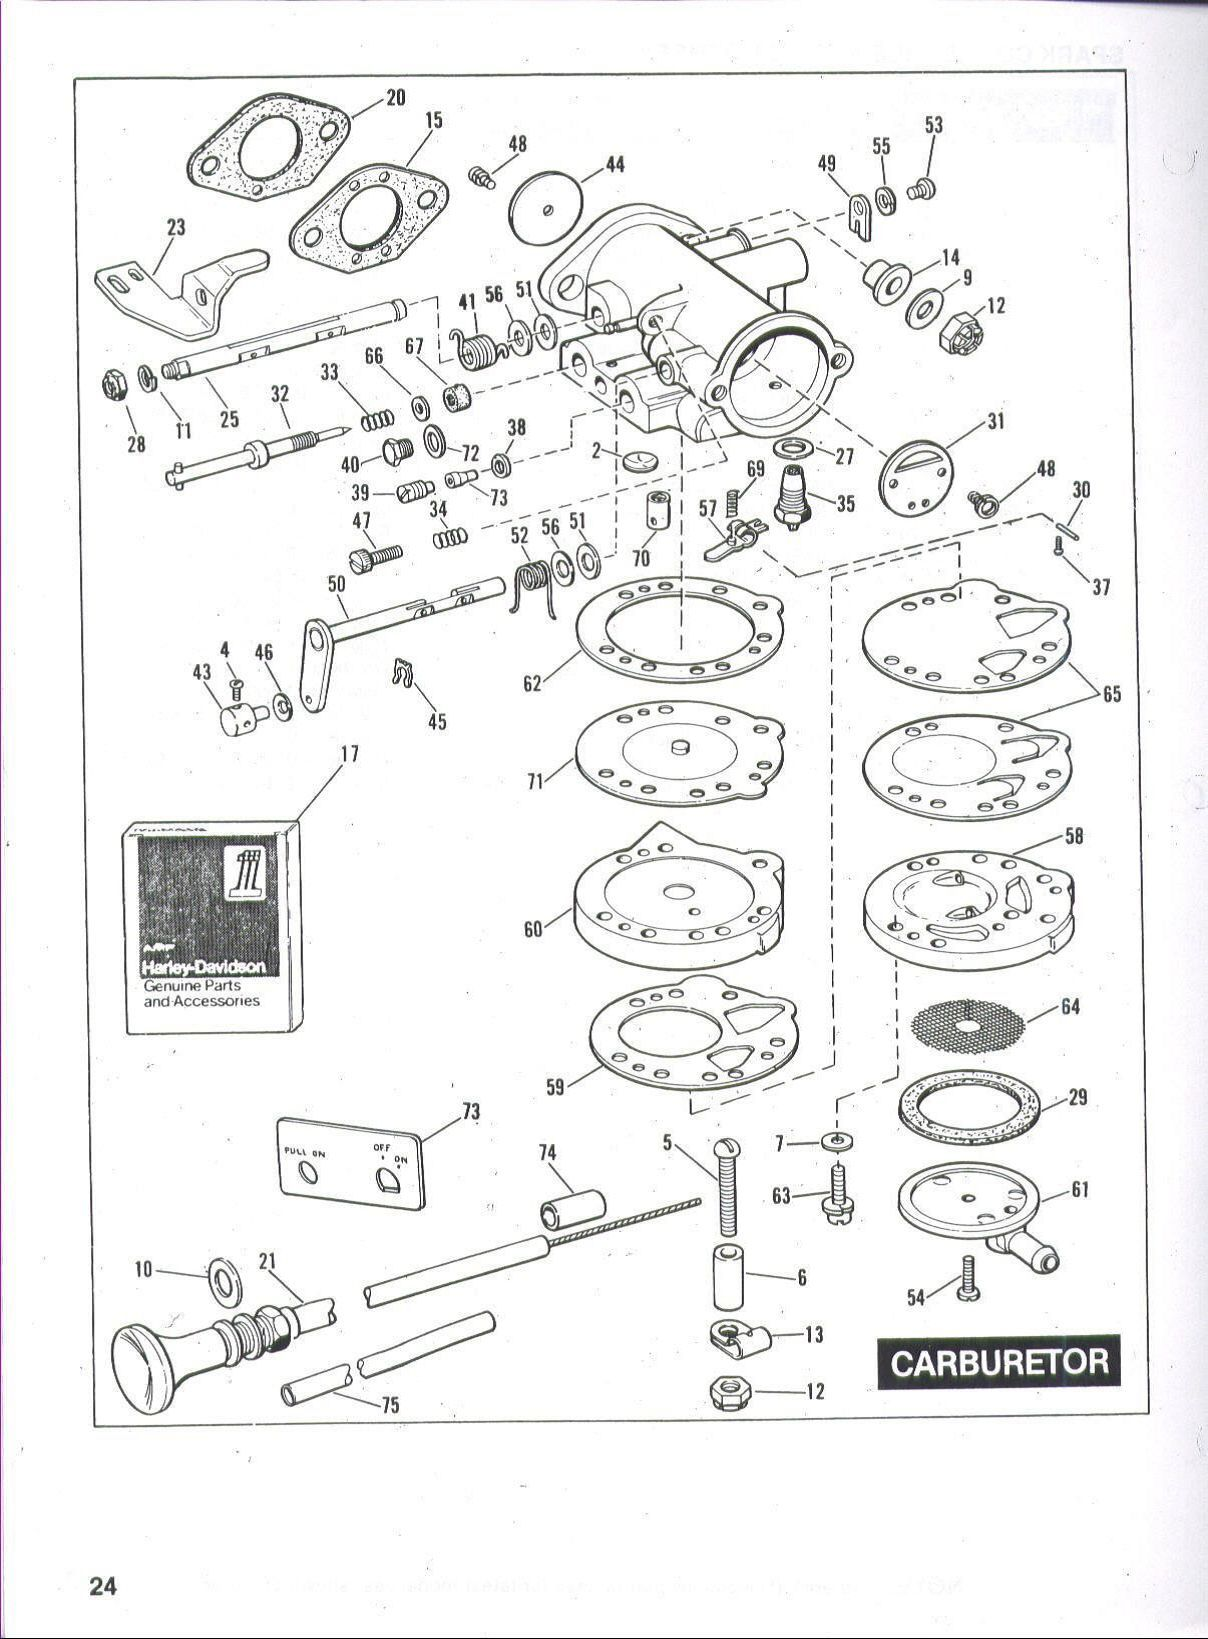 5176dbb44702a1adc4080edf7301936d harley davidson golf cart carburetor diagram utv stuff golf cart diagrams at gsmx.co